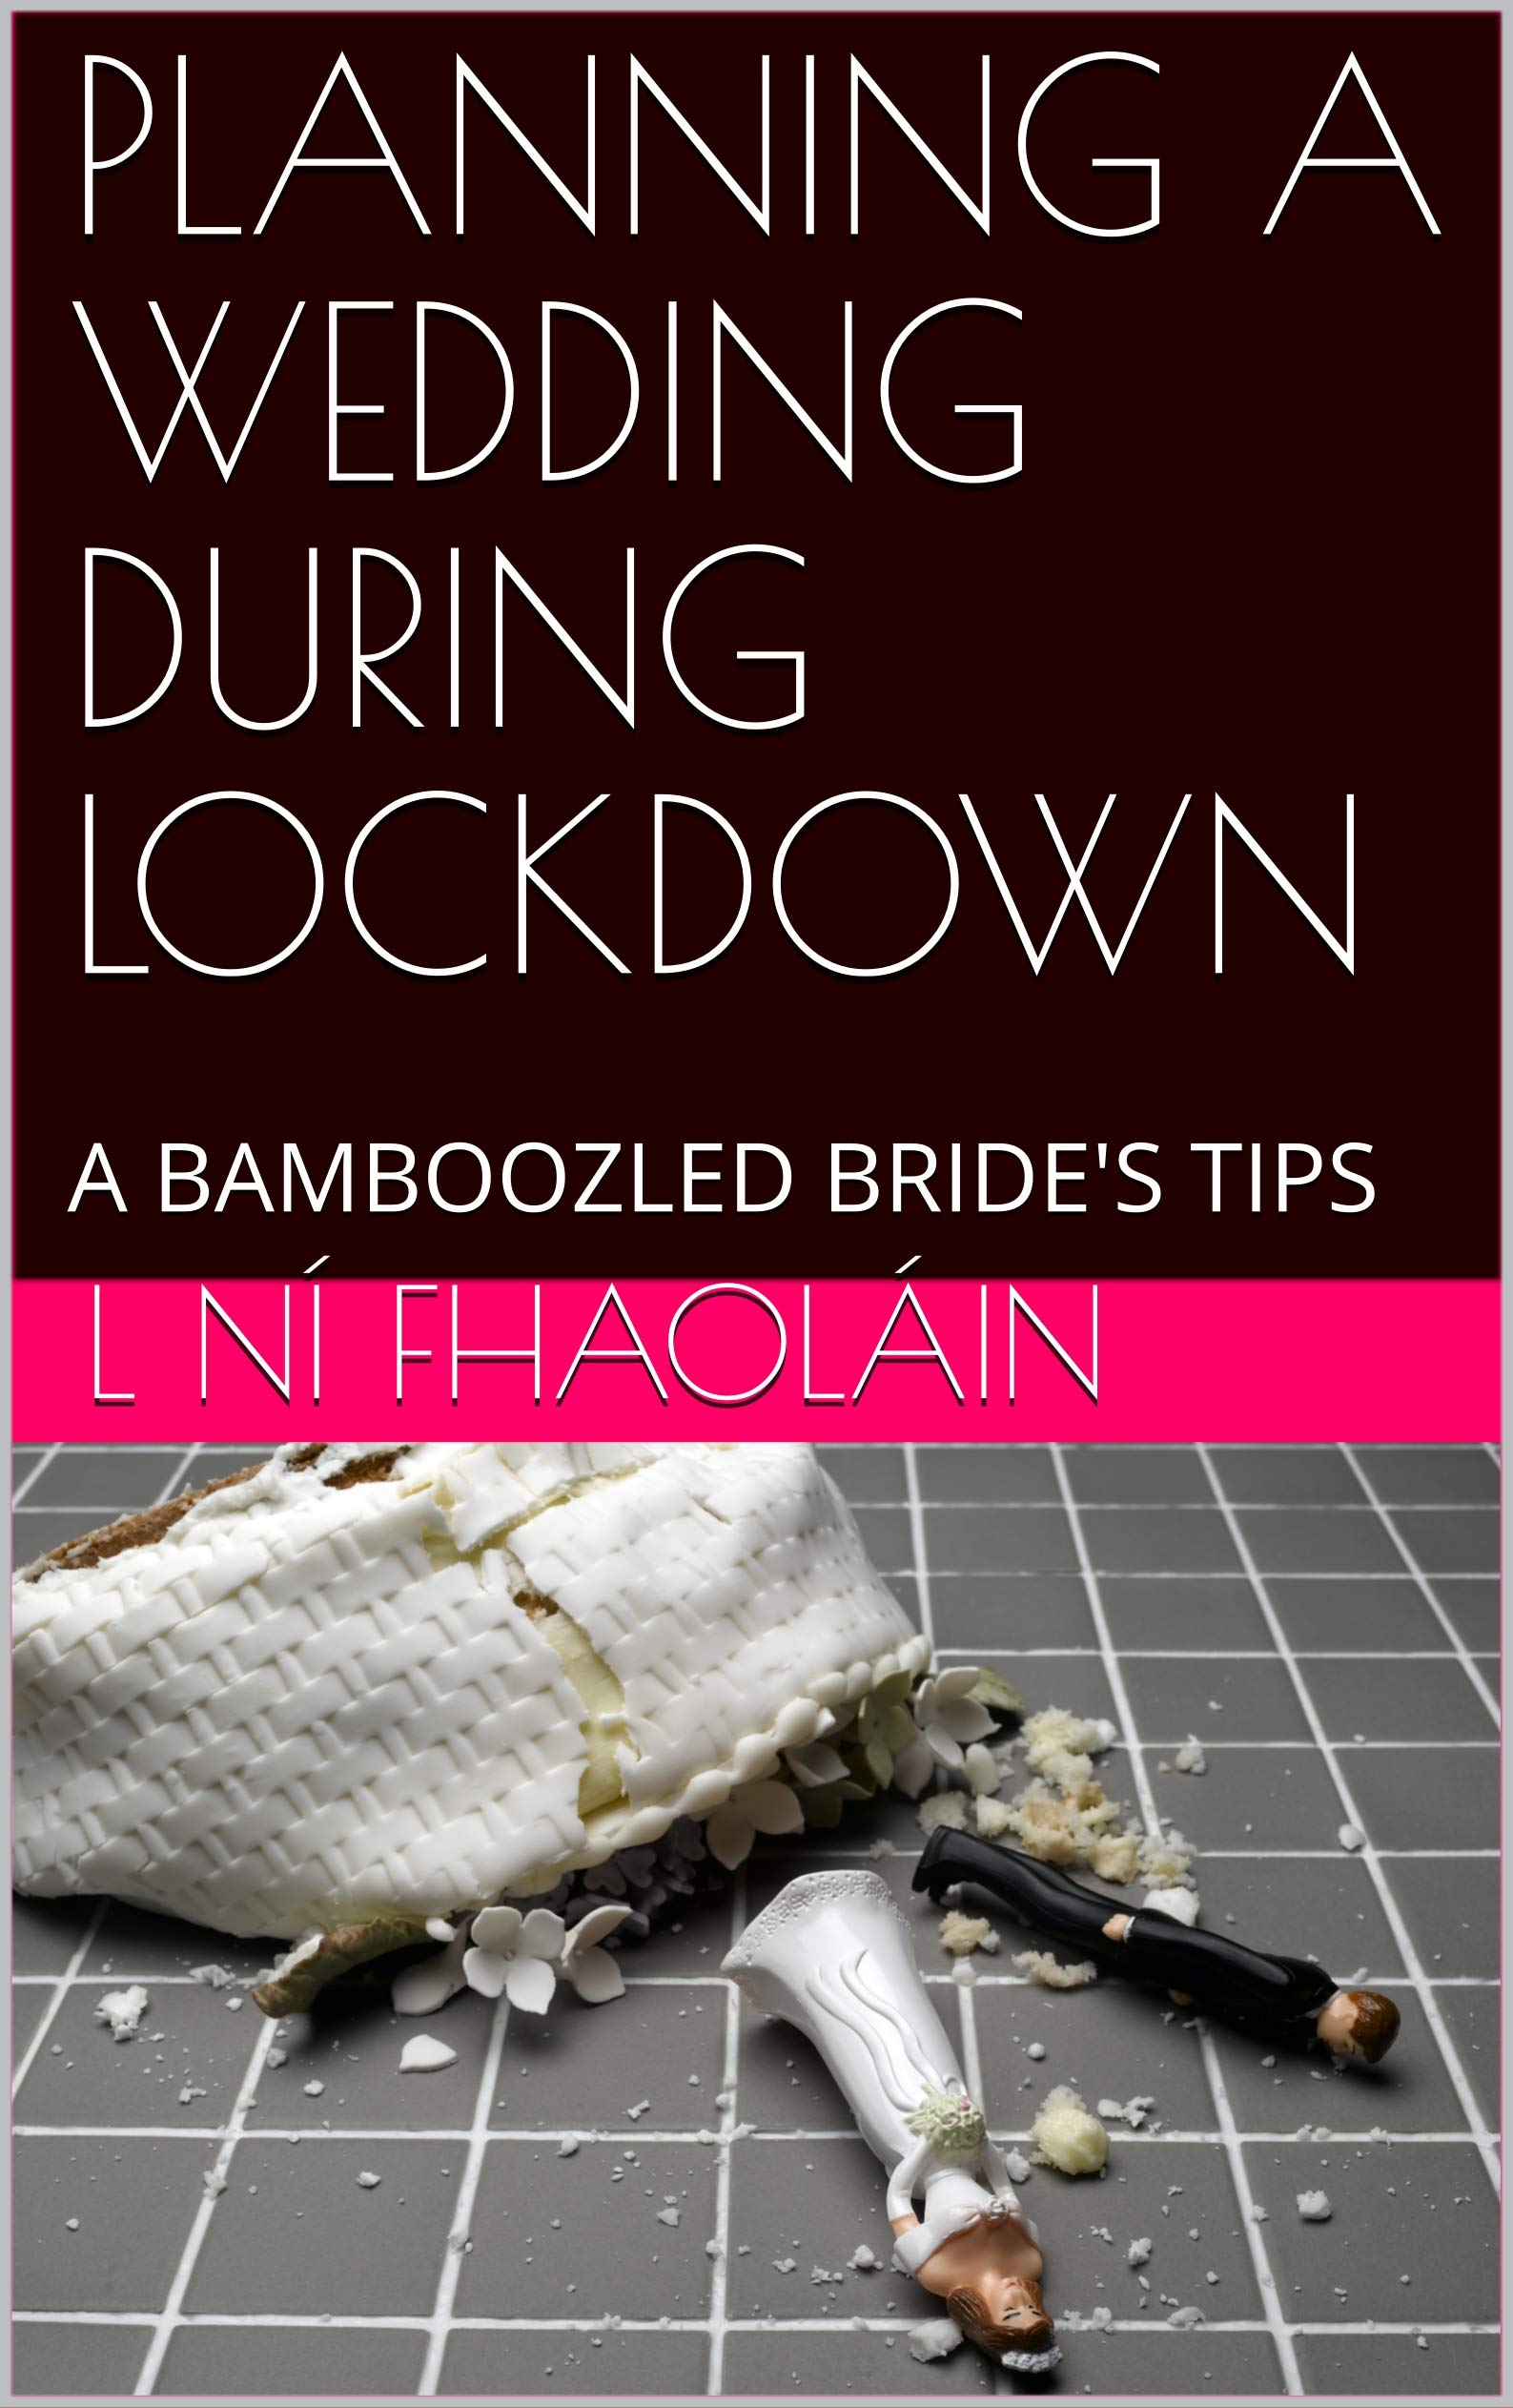 PLANNING A WEDDING DURING LOCKDOWN : A BAMBOOZLED BRIDE'S TIPS